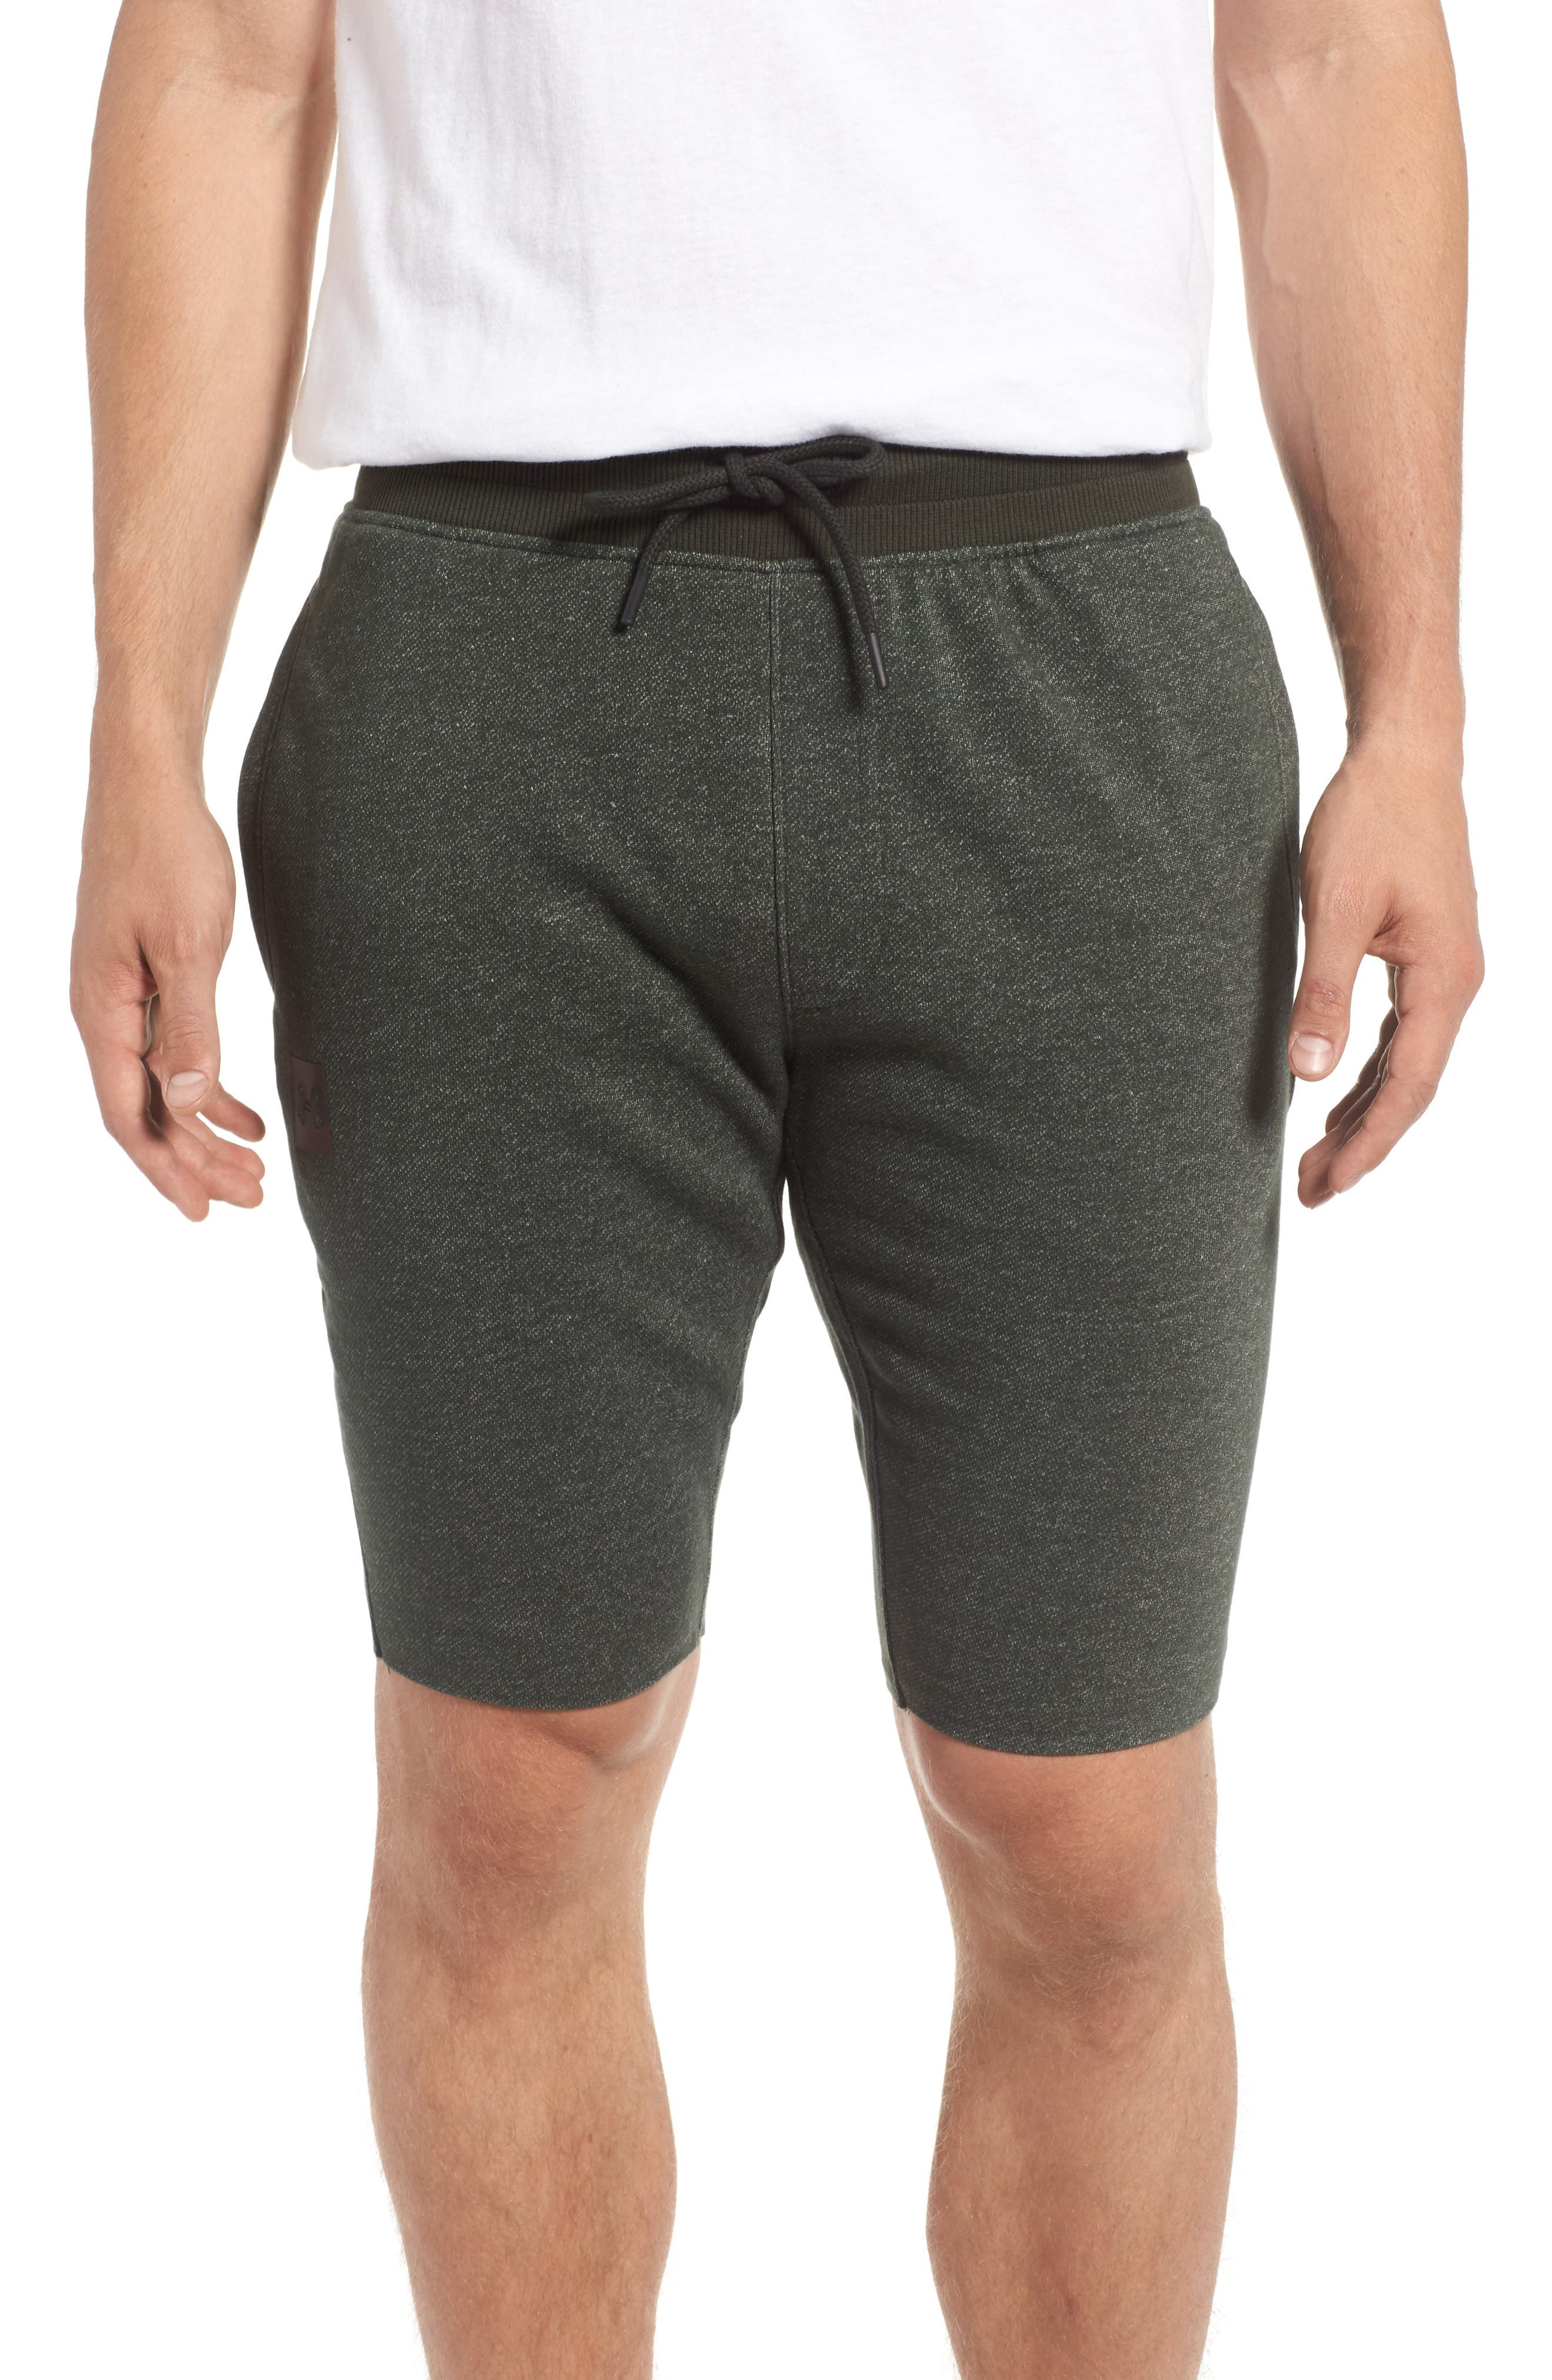 Terry Knit Athletic Shorts,                         Main,                         color, Artillery Green / Black